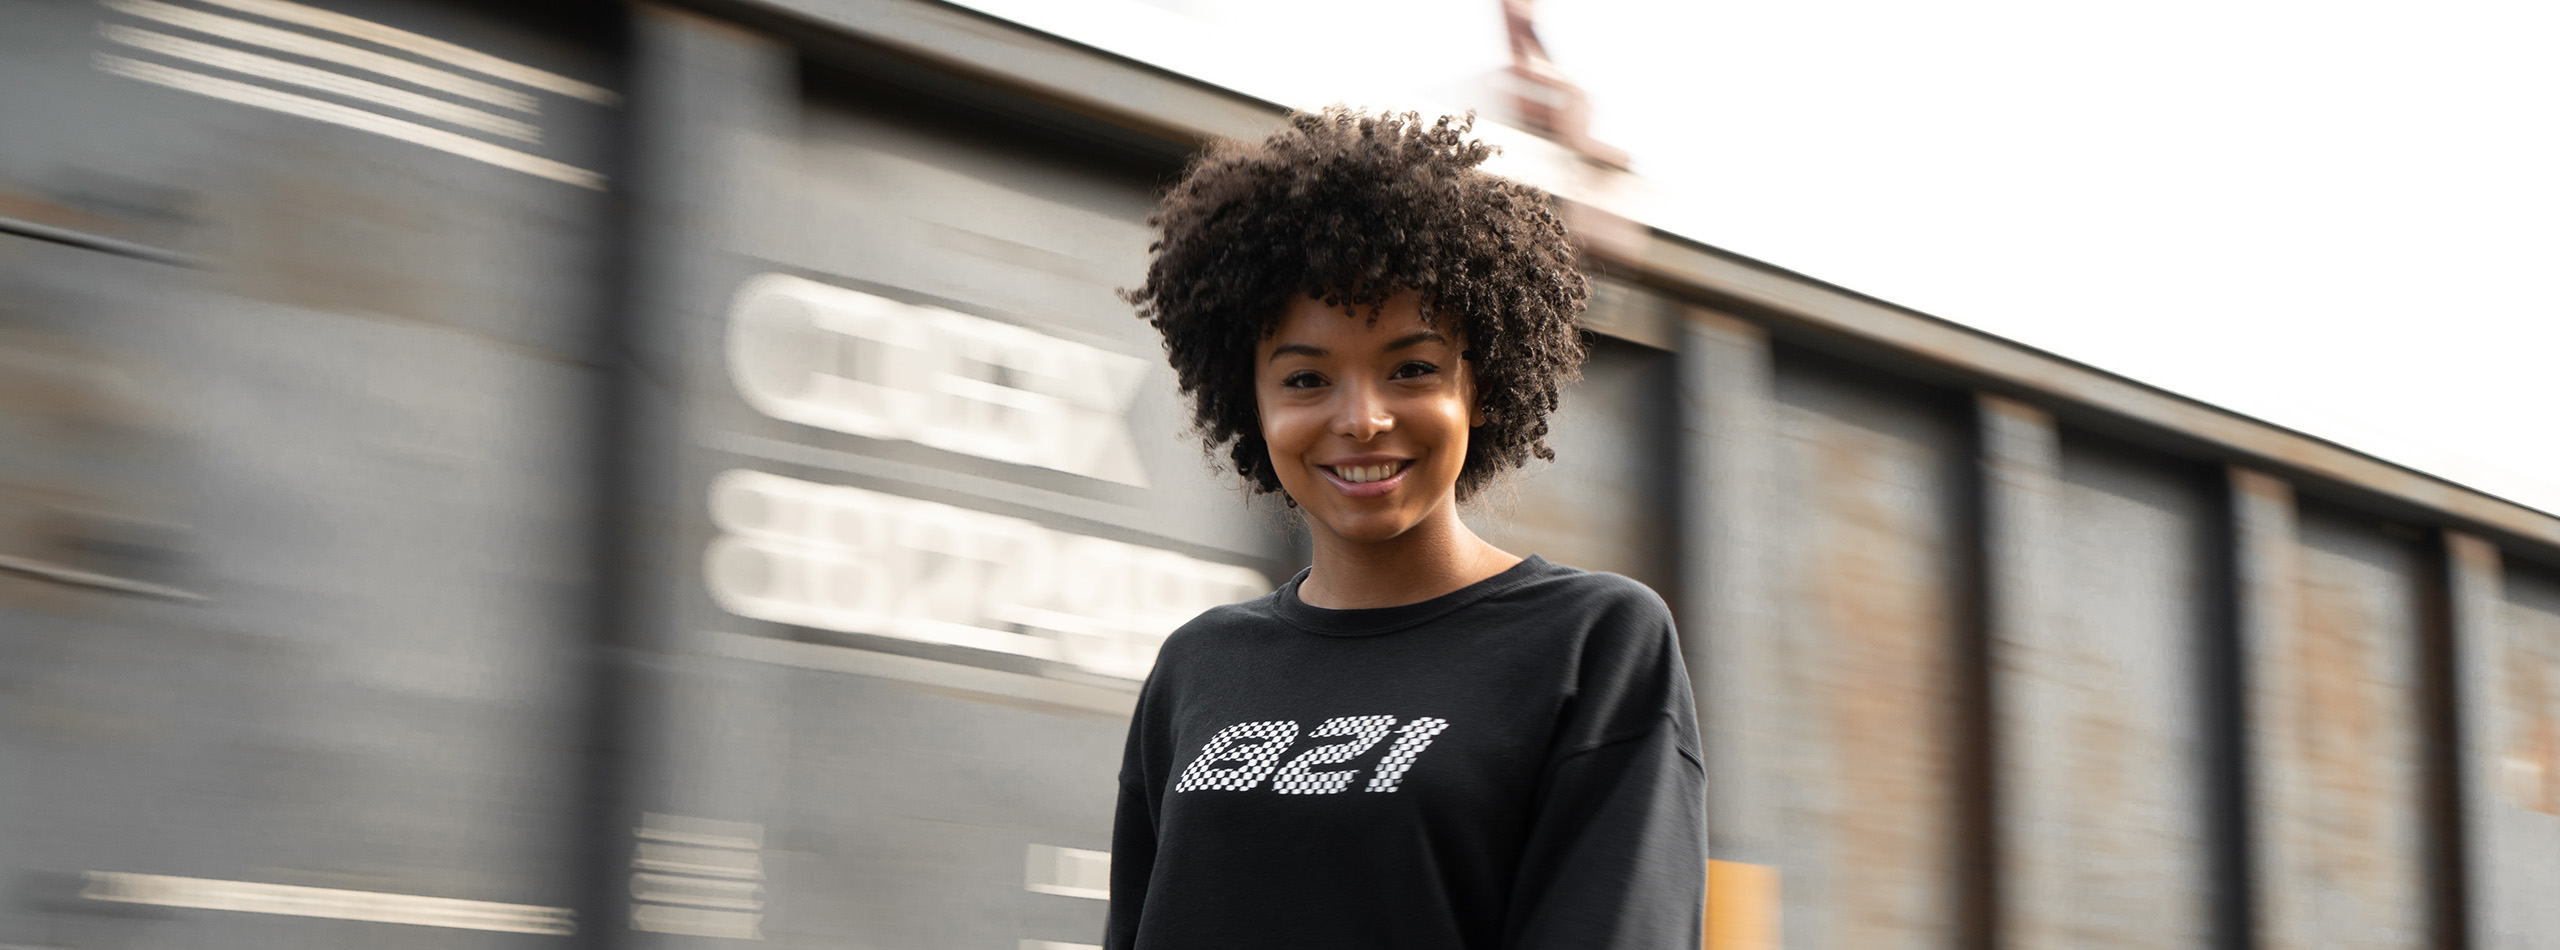 Girl in front of a train wearing a sweatshirt